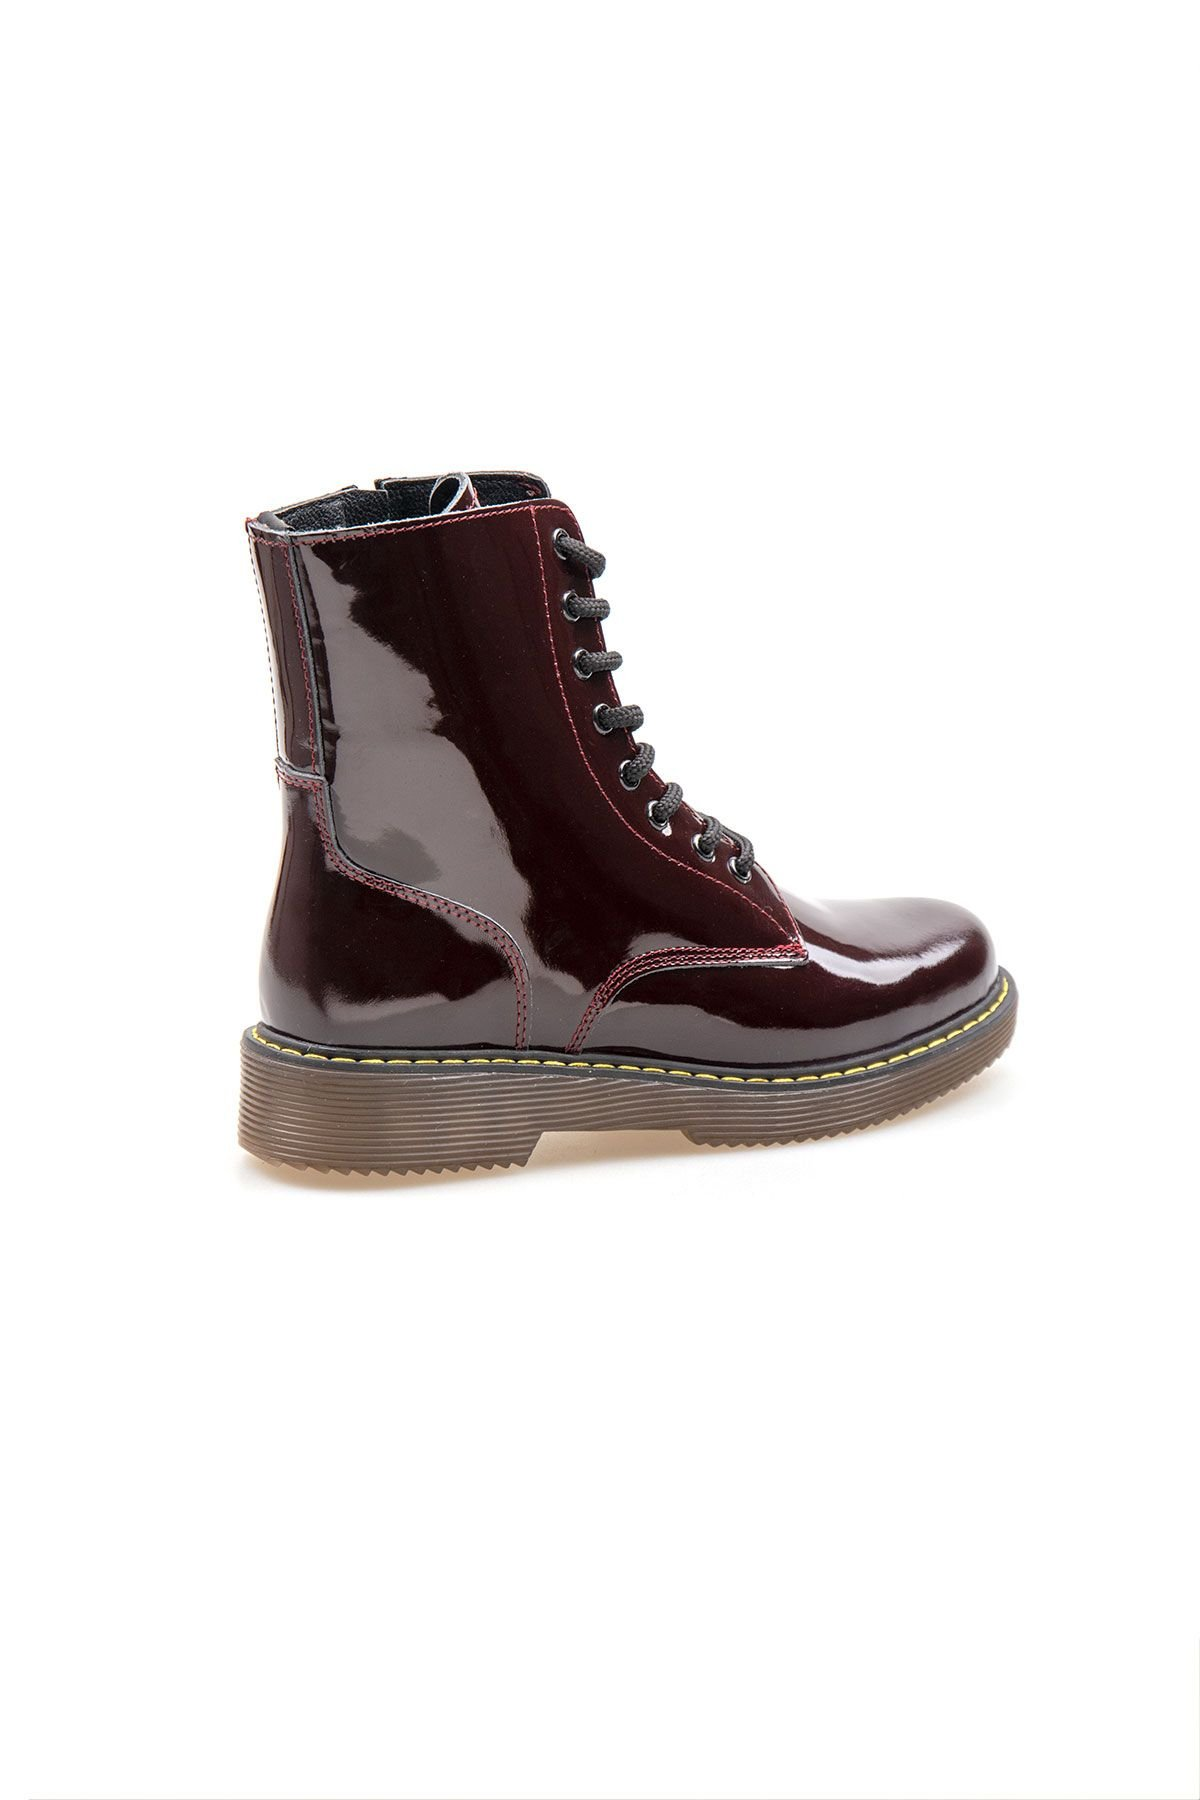 Pegia Genuine Patent Leather Women's Boots 500713 Claret red